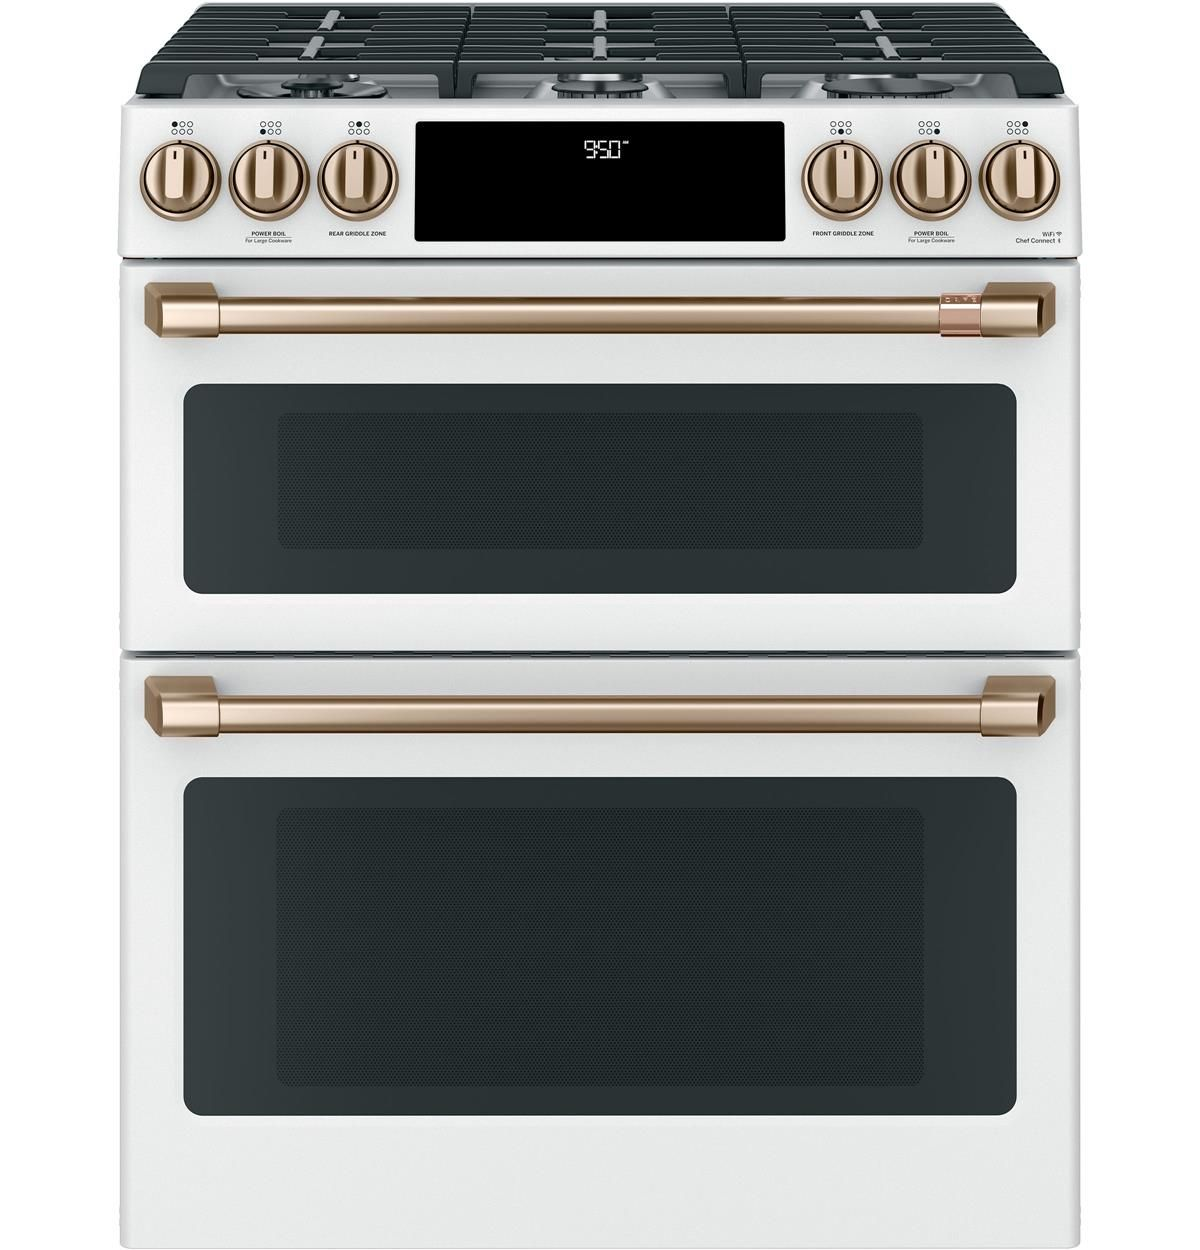 C2s950p4mw2 Overview Cafe 30 Slide In Front Control Dual Fuel Double Oven With Convection Range Cafe Appliances Gas Double Oven Gas Oven Double Oven Range